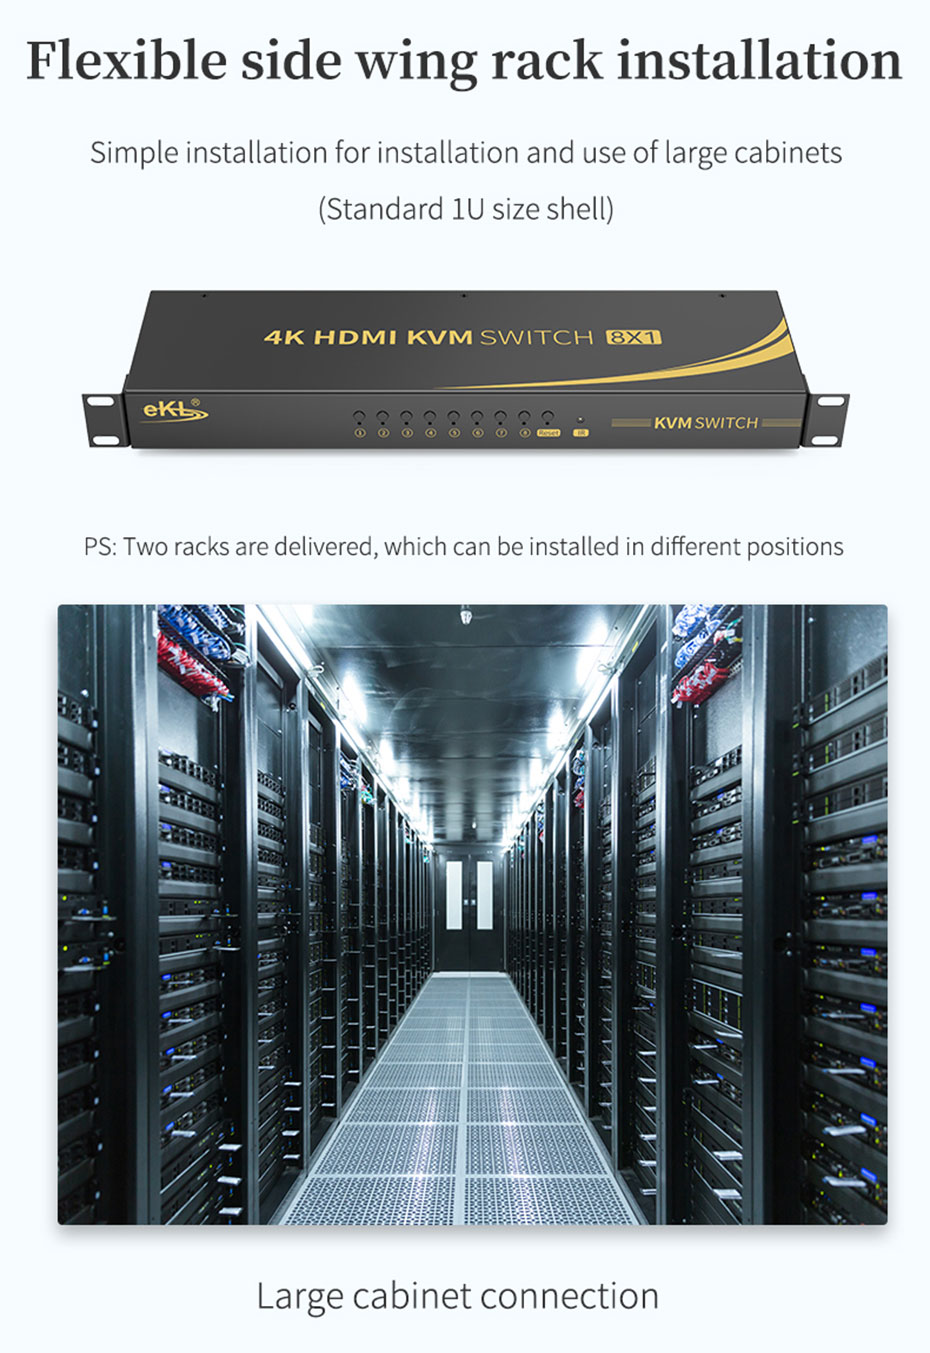 HDMI KVM switch 8 in 1 out 81HK supports side wing rack installation